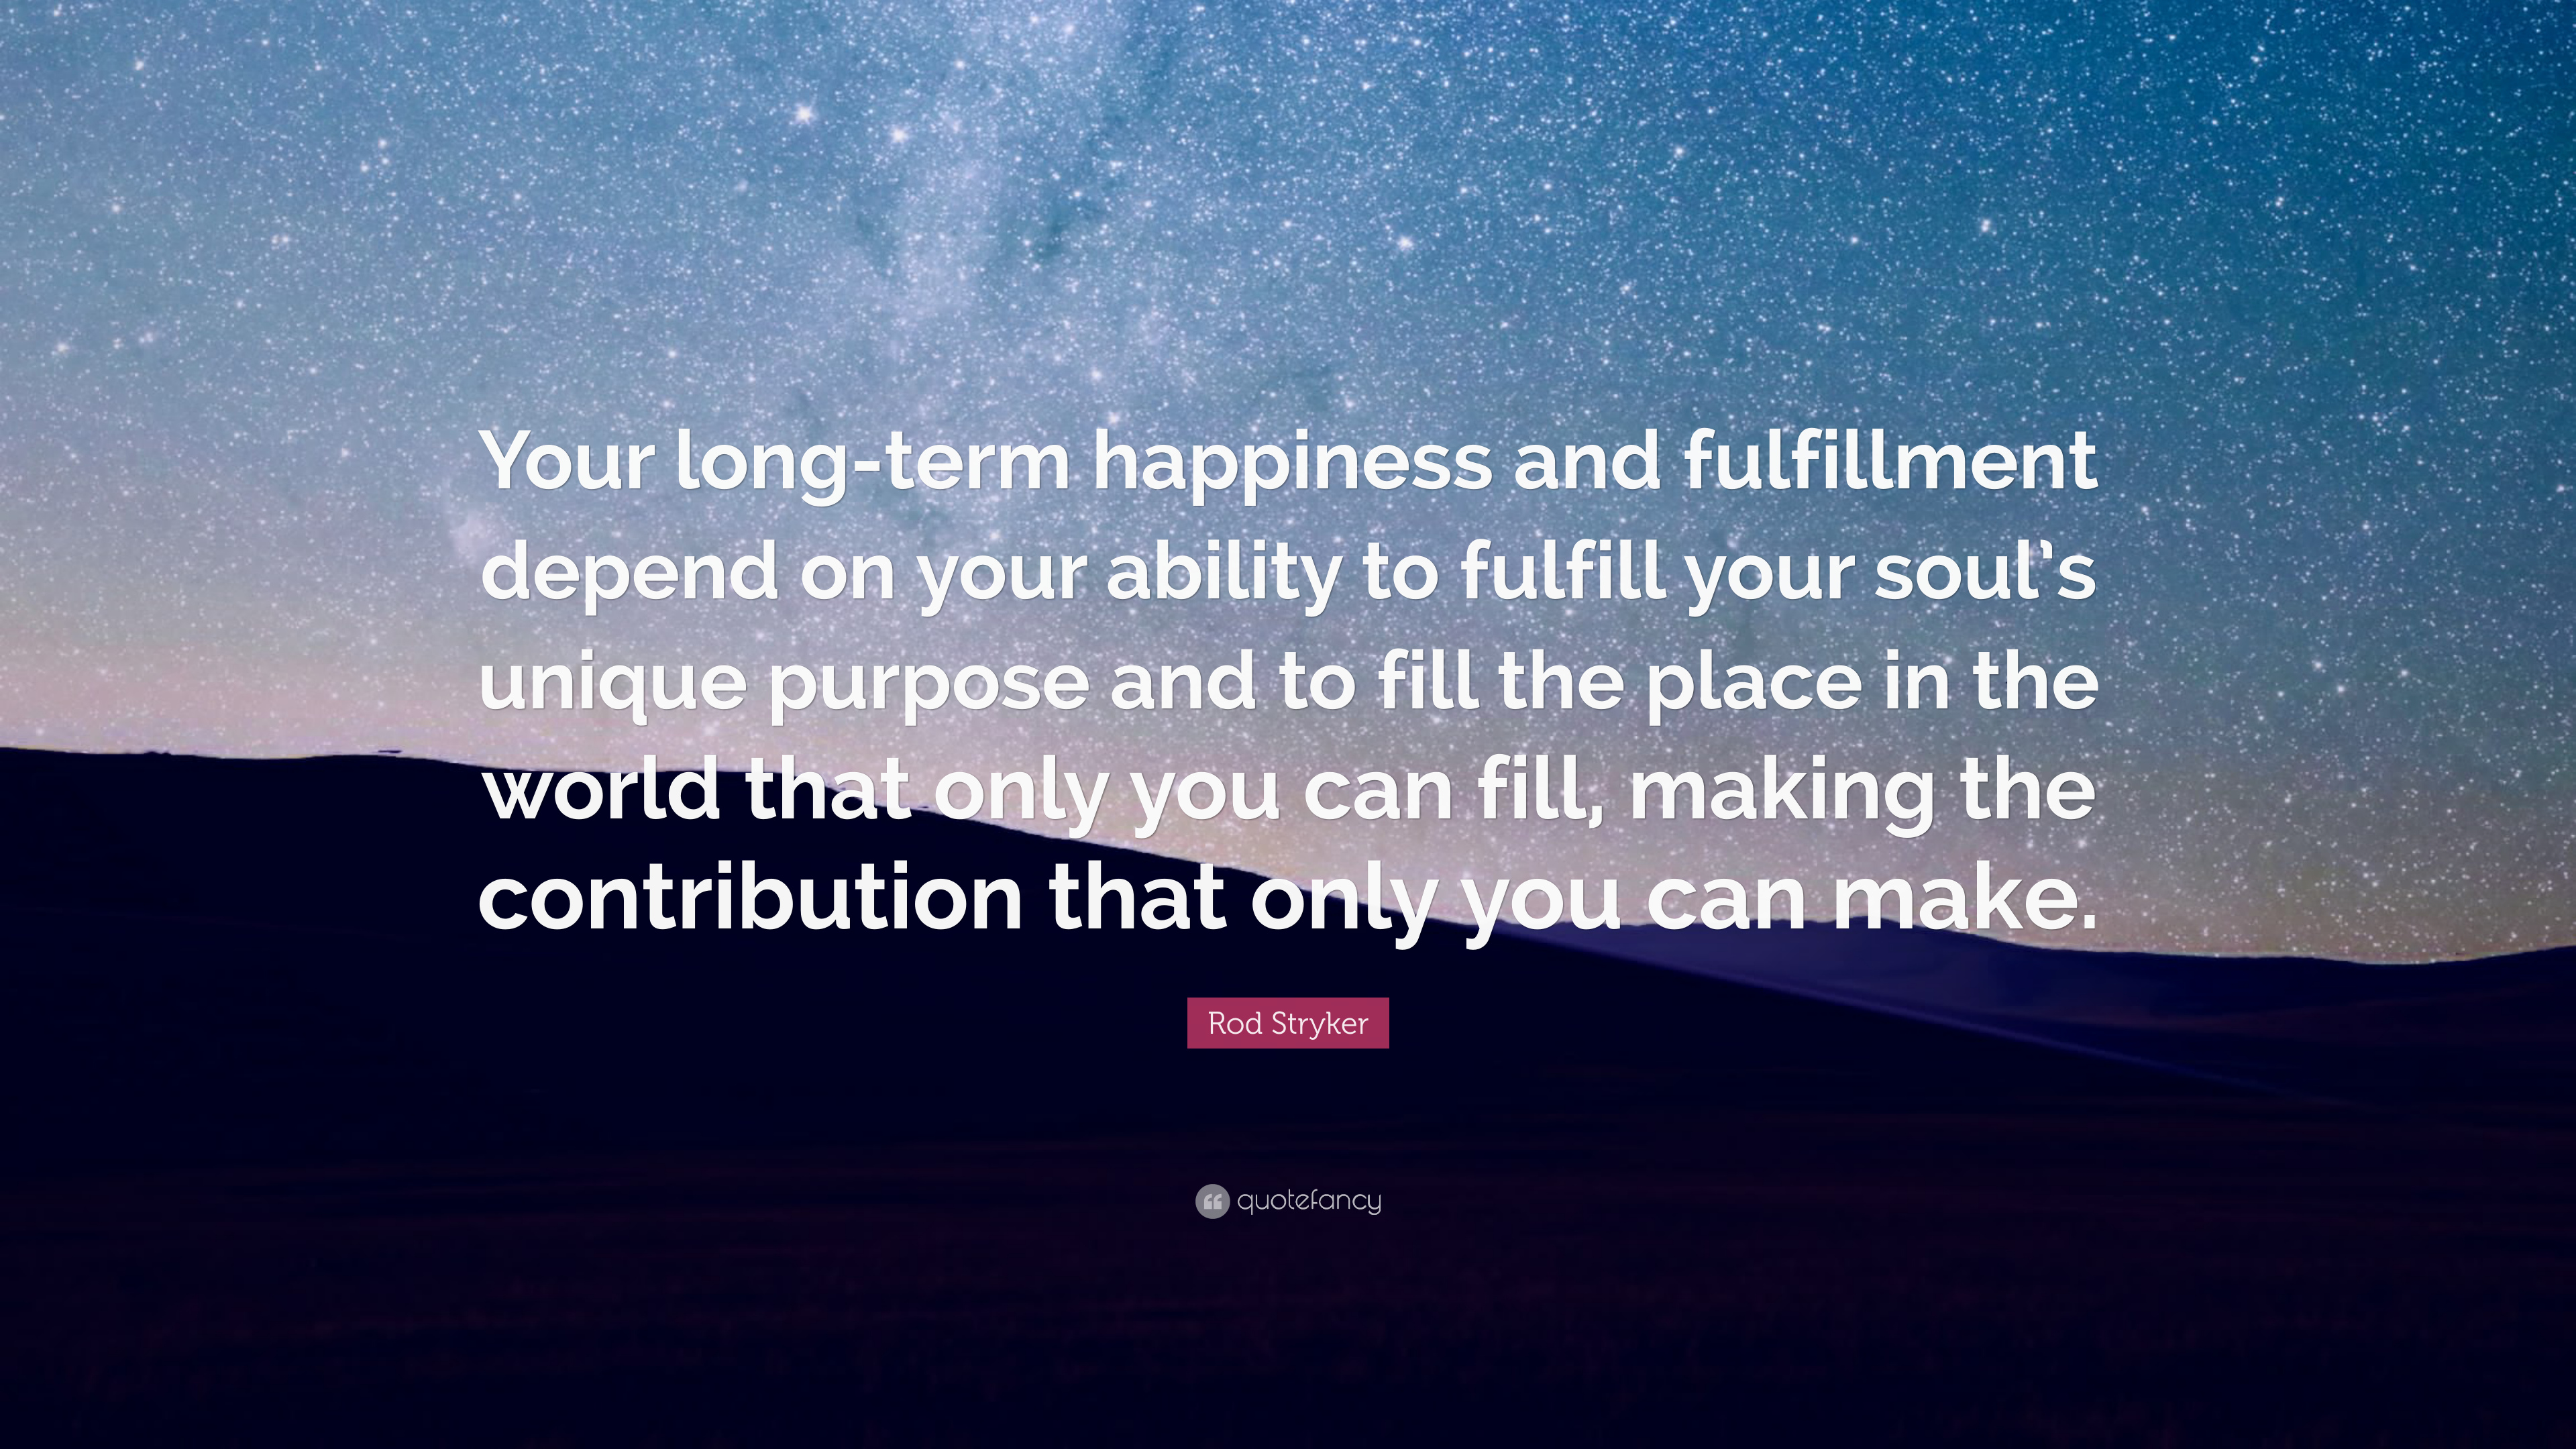 Fulfillment Quotes Rod Stryker Quotes 36 Wallpapers  Quotefancy